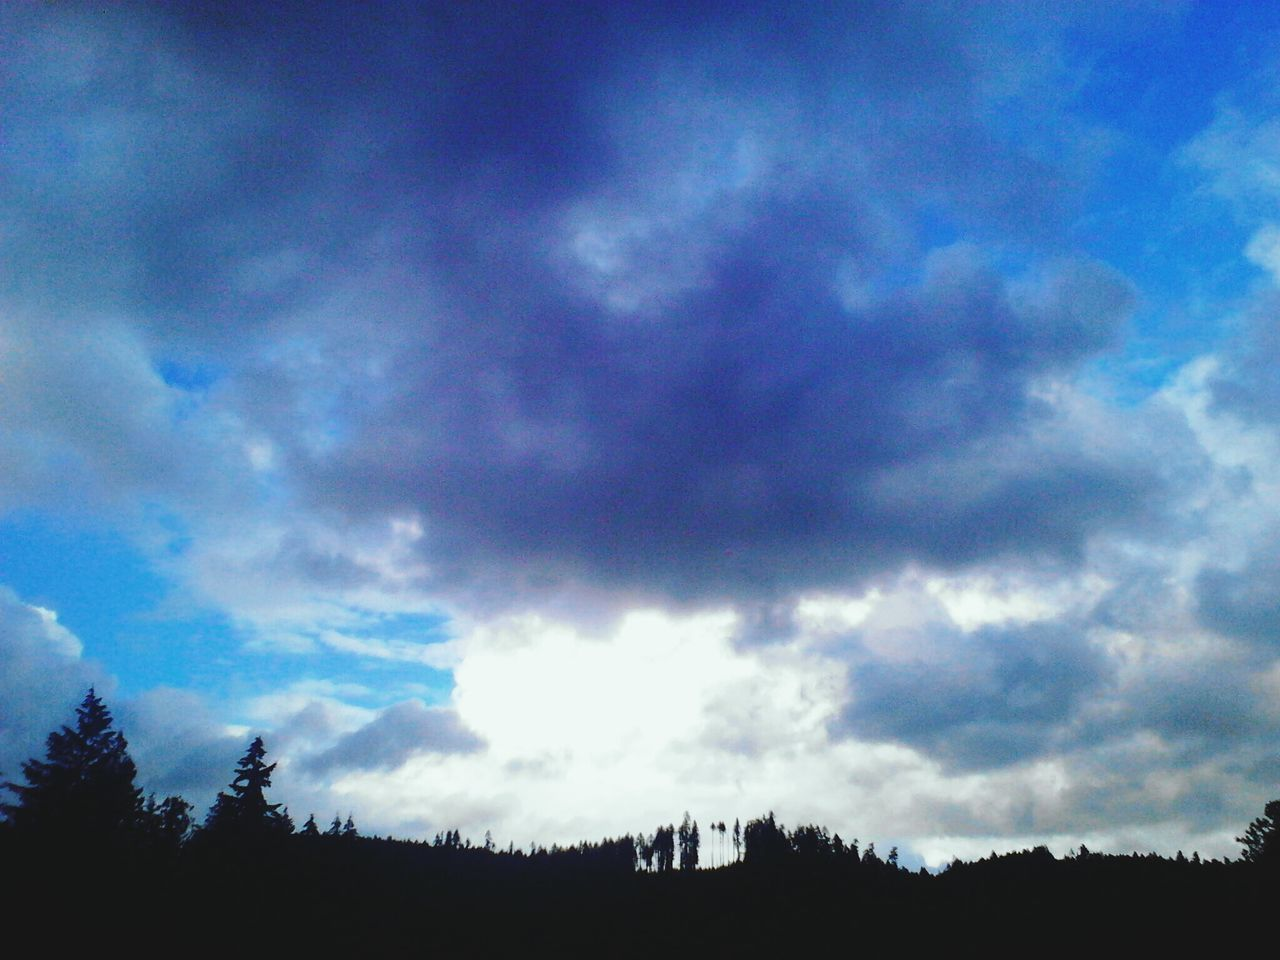 sky, cloud - sky, silhouette, low angle view, tree, nature, beauty in nature, tranquil scene, scenics, no people, tranquility, built structure, day, outdoors, blue, architecture